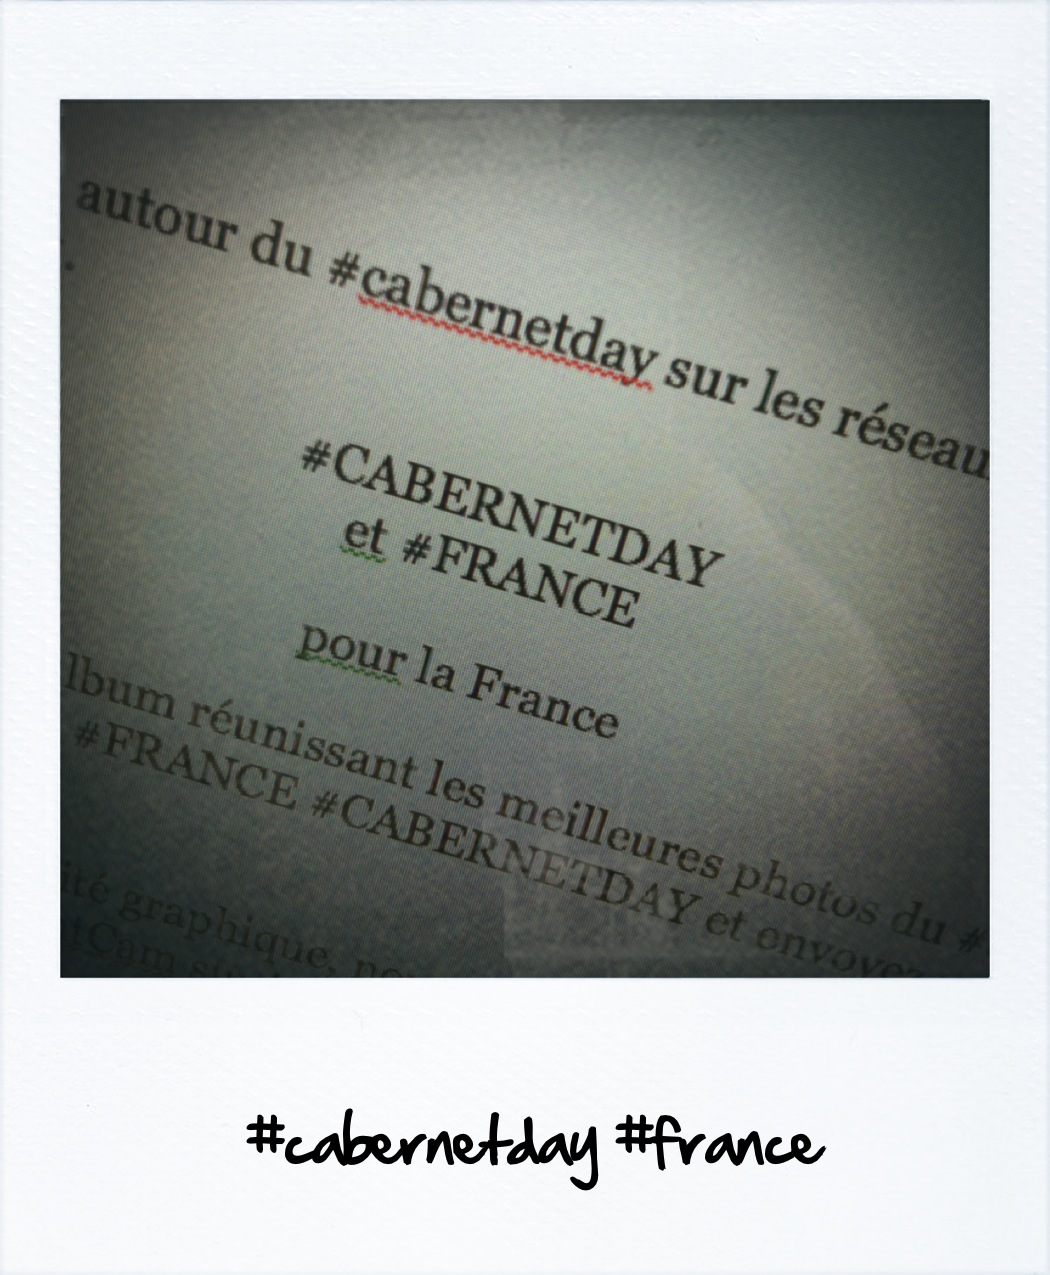 mise en forme photo #cabernetday